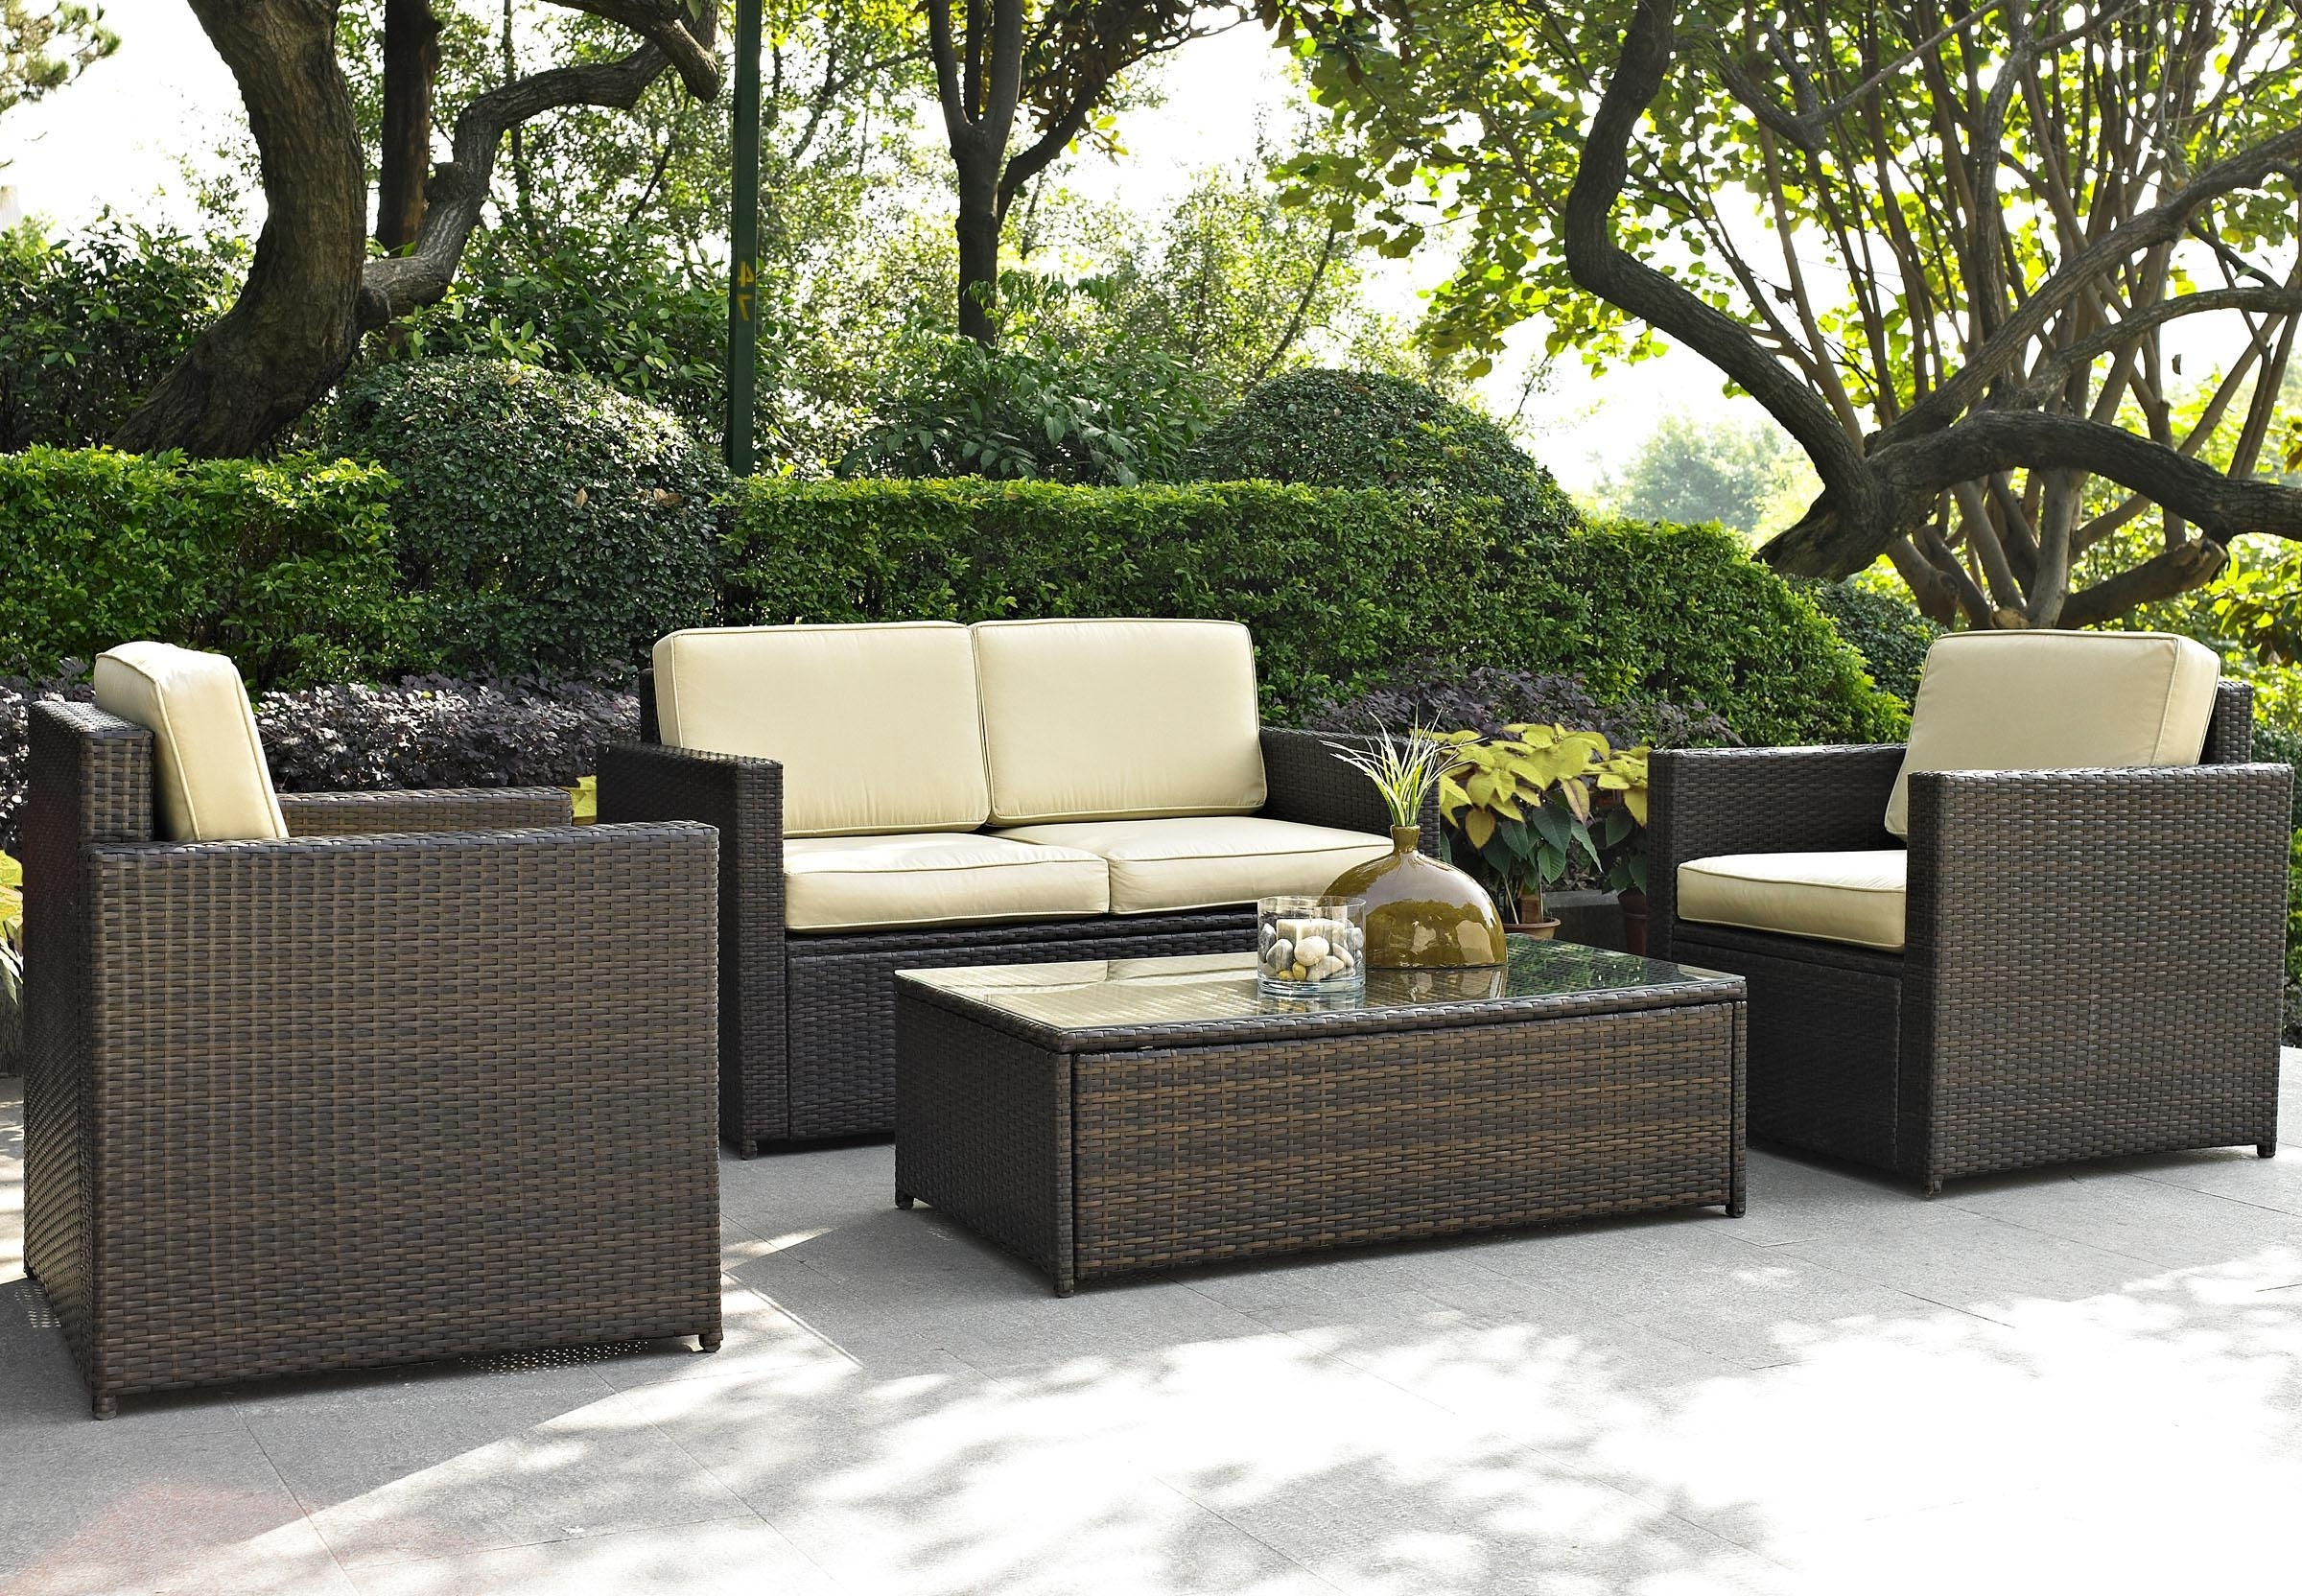 Patio Conversation Sets At Target Throughout Most Recent Furniture: Lovely Brown Wicker Chair Outdoor Furniture Design (View 5 of 20)